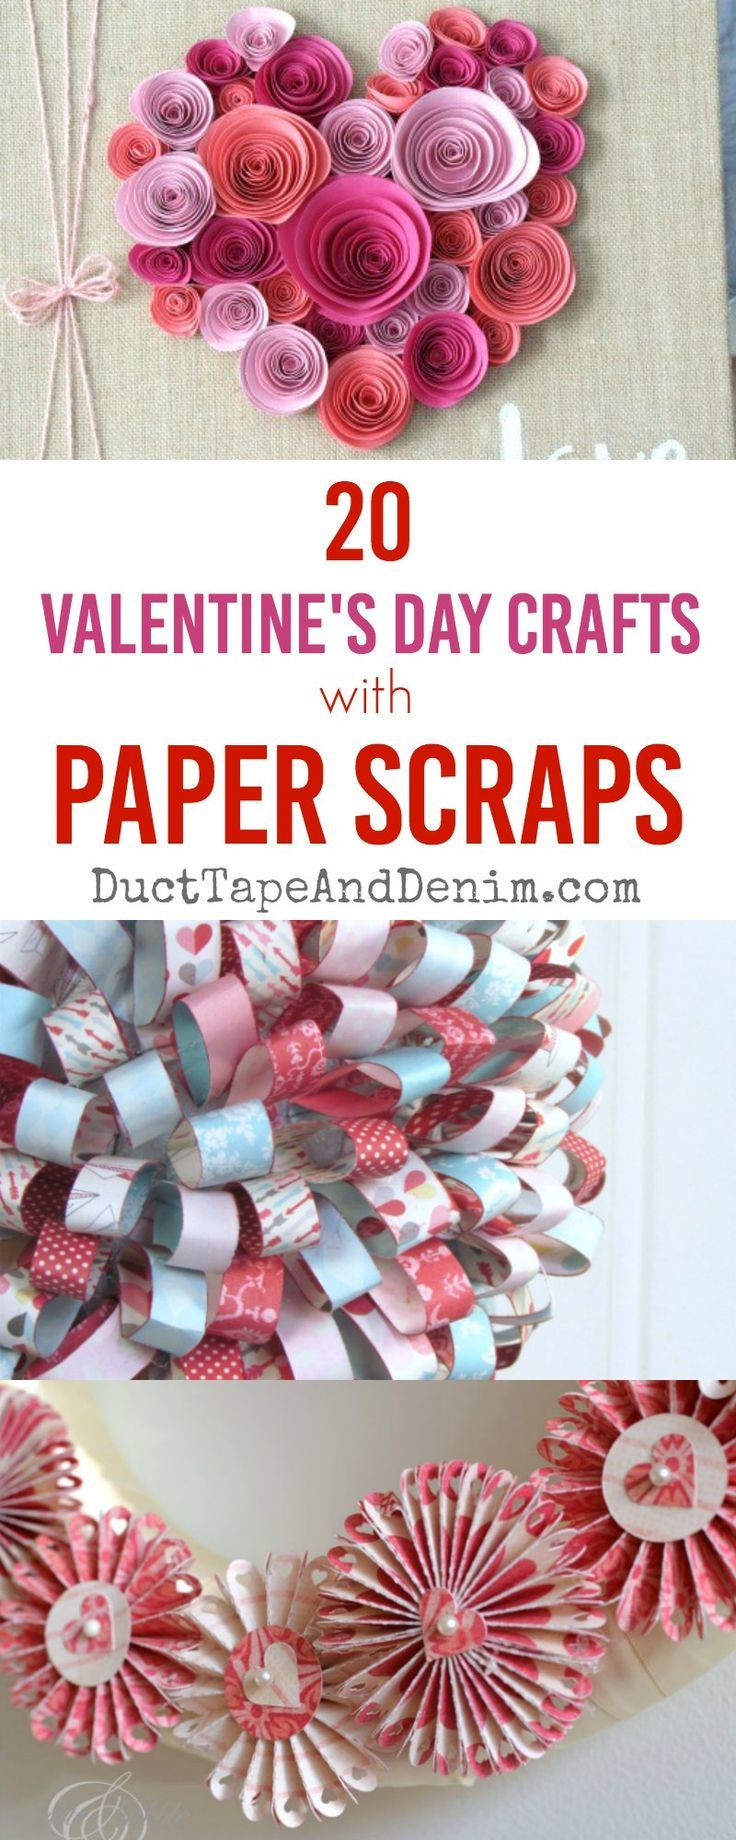 Crafts With Paper And Glue